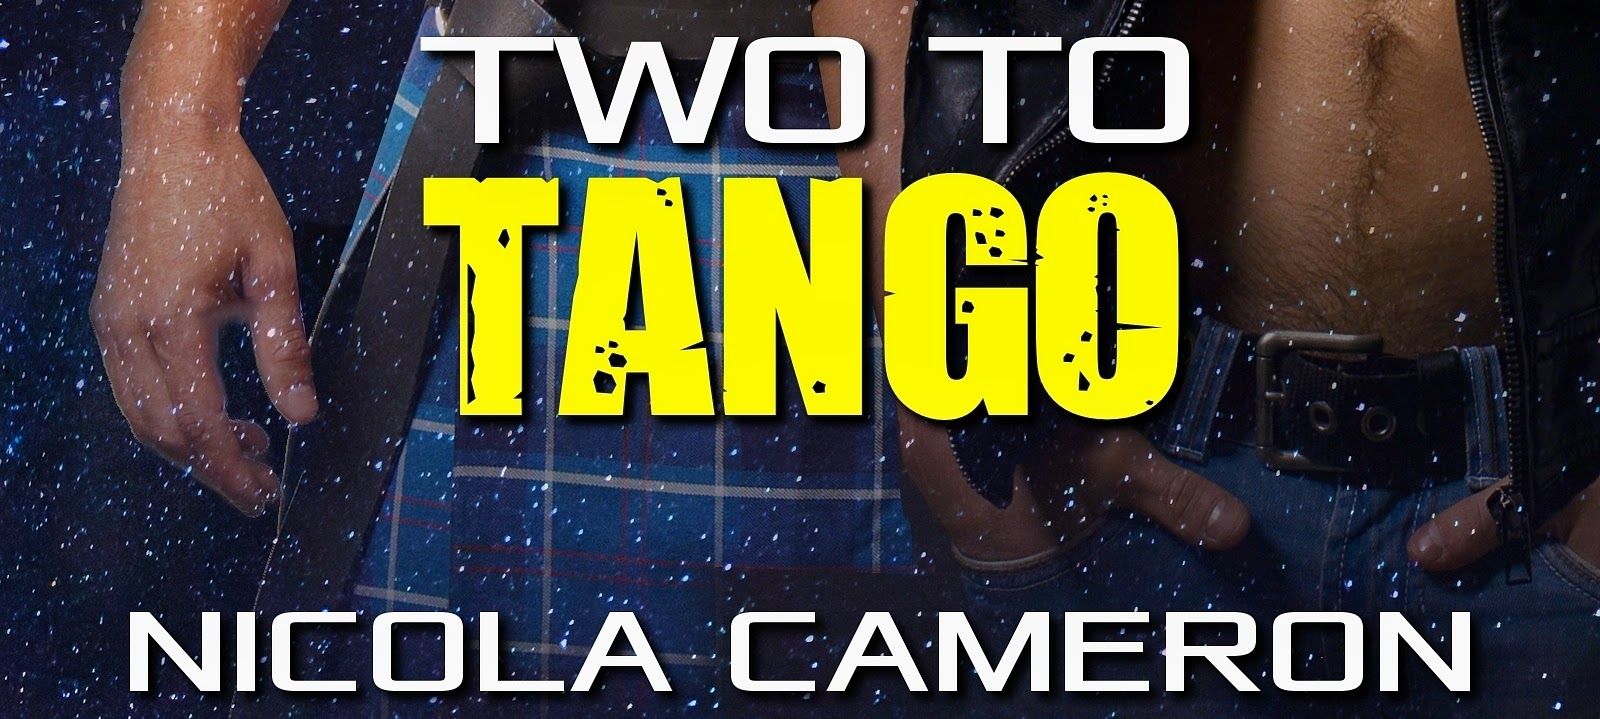 TWO TO TANGO Blog Tour & Giveaway